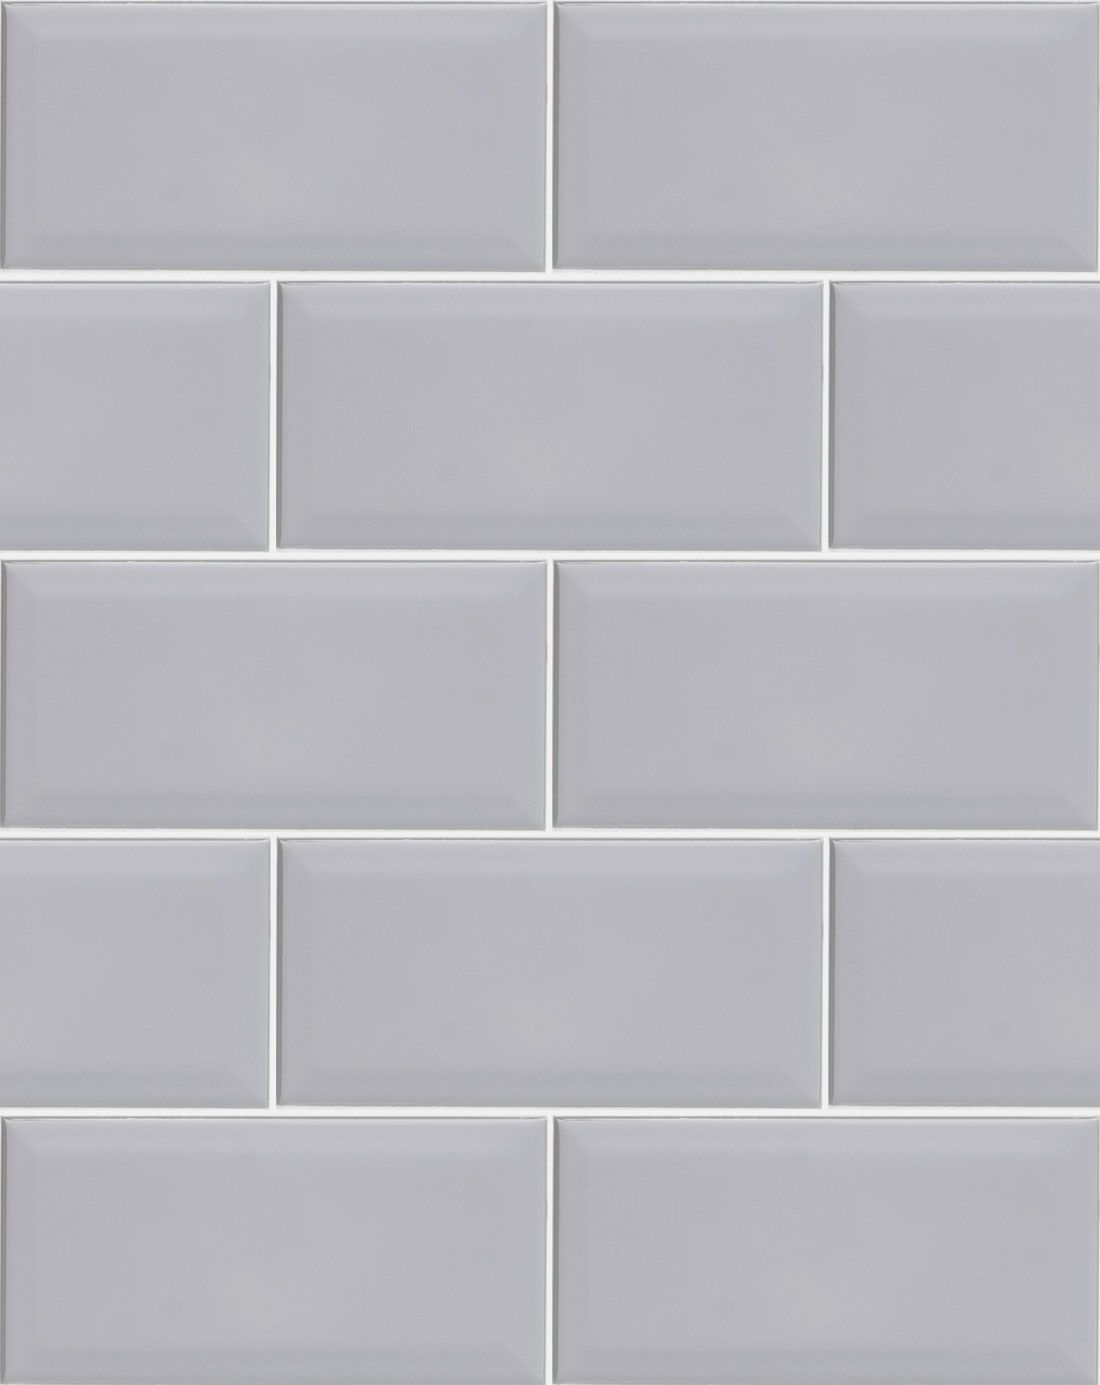 For Kitchen Wall Tiles Edge Tile Red 200mmx100mm Metro Kitchen Wall Tiles Kitchen